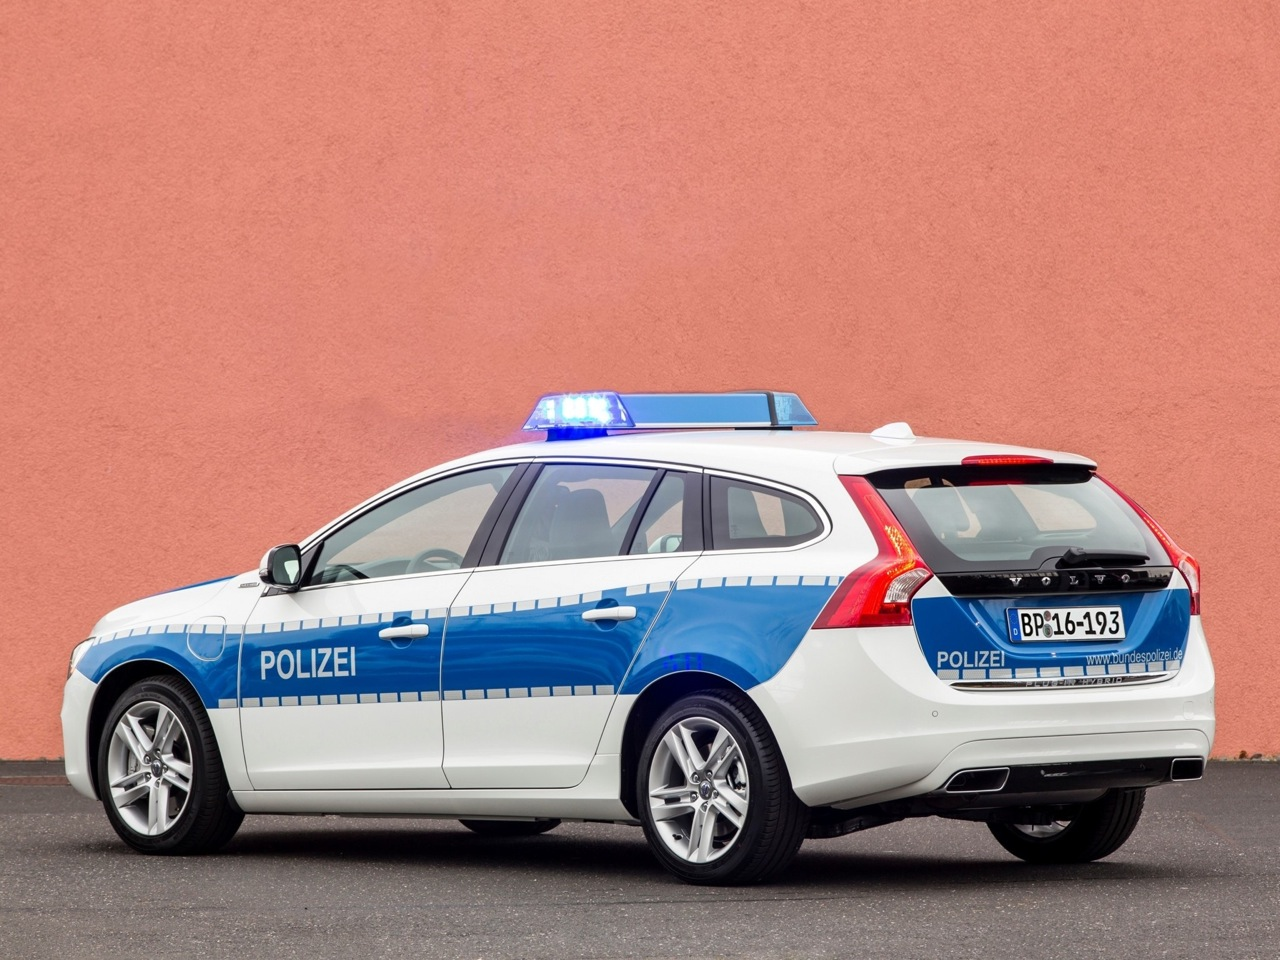 Kia Hybrid Car >> German police recruits Volvo V60 diesel hybrid patrol cars | PerformanceDrive